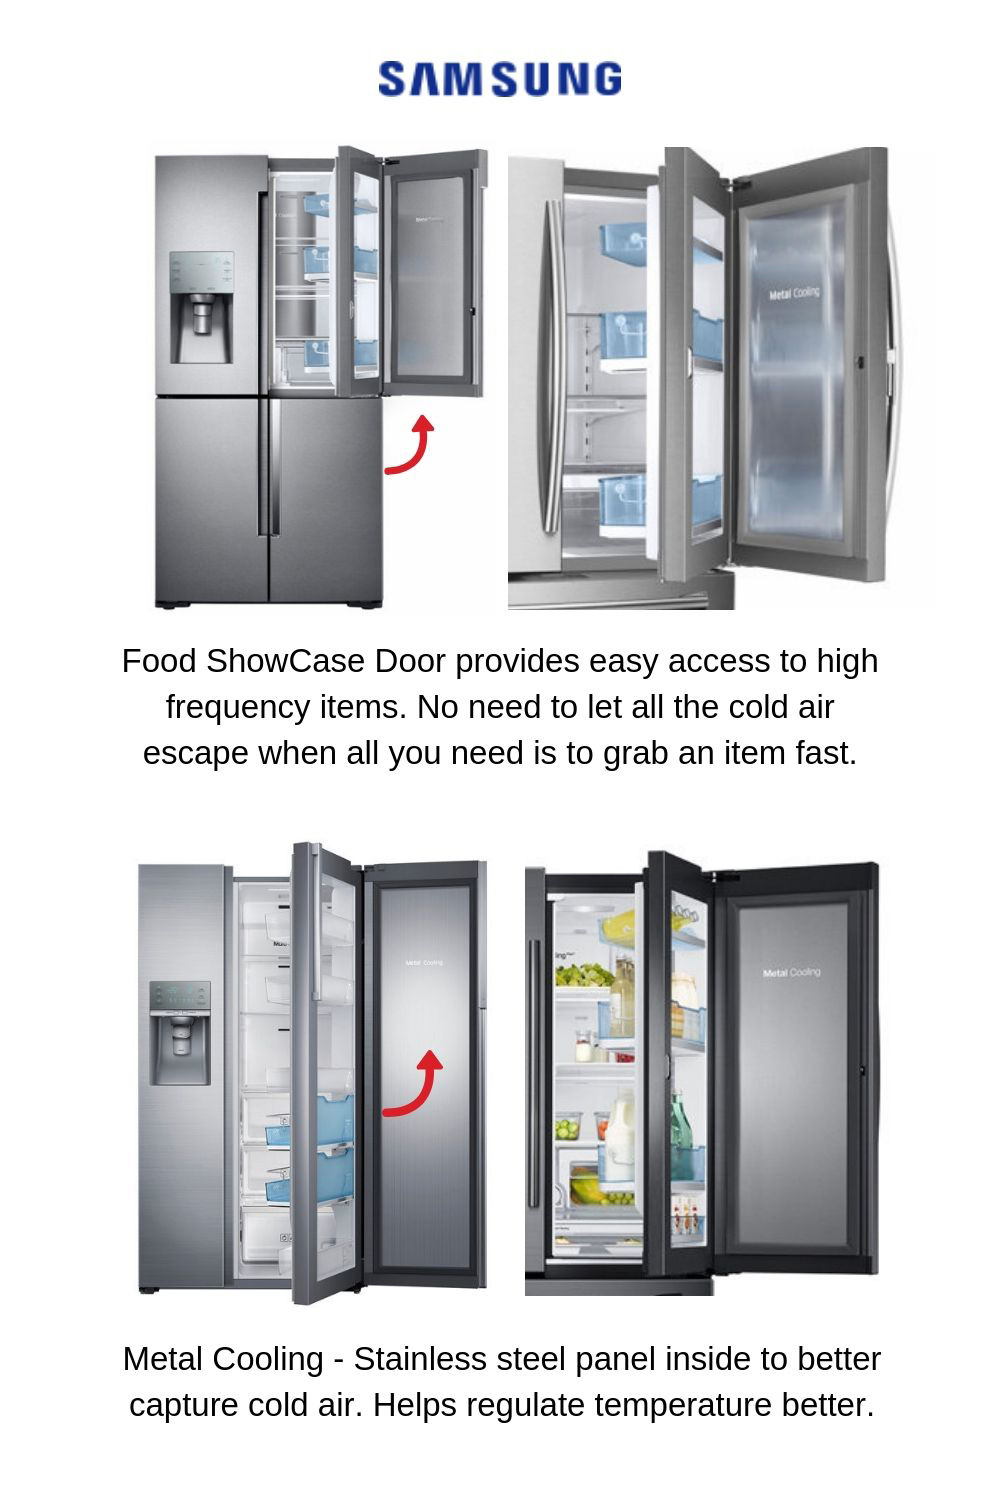 Metal-inside-door-to-keep-cold-air